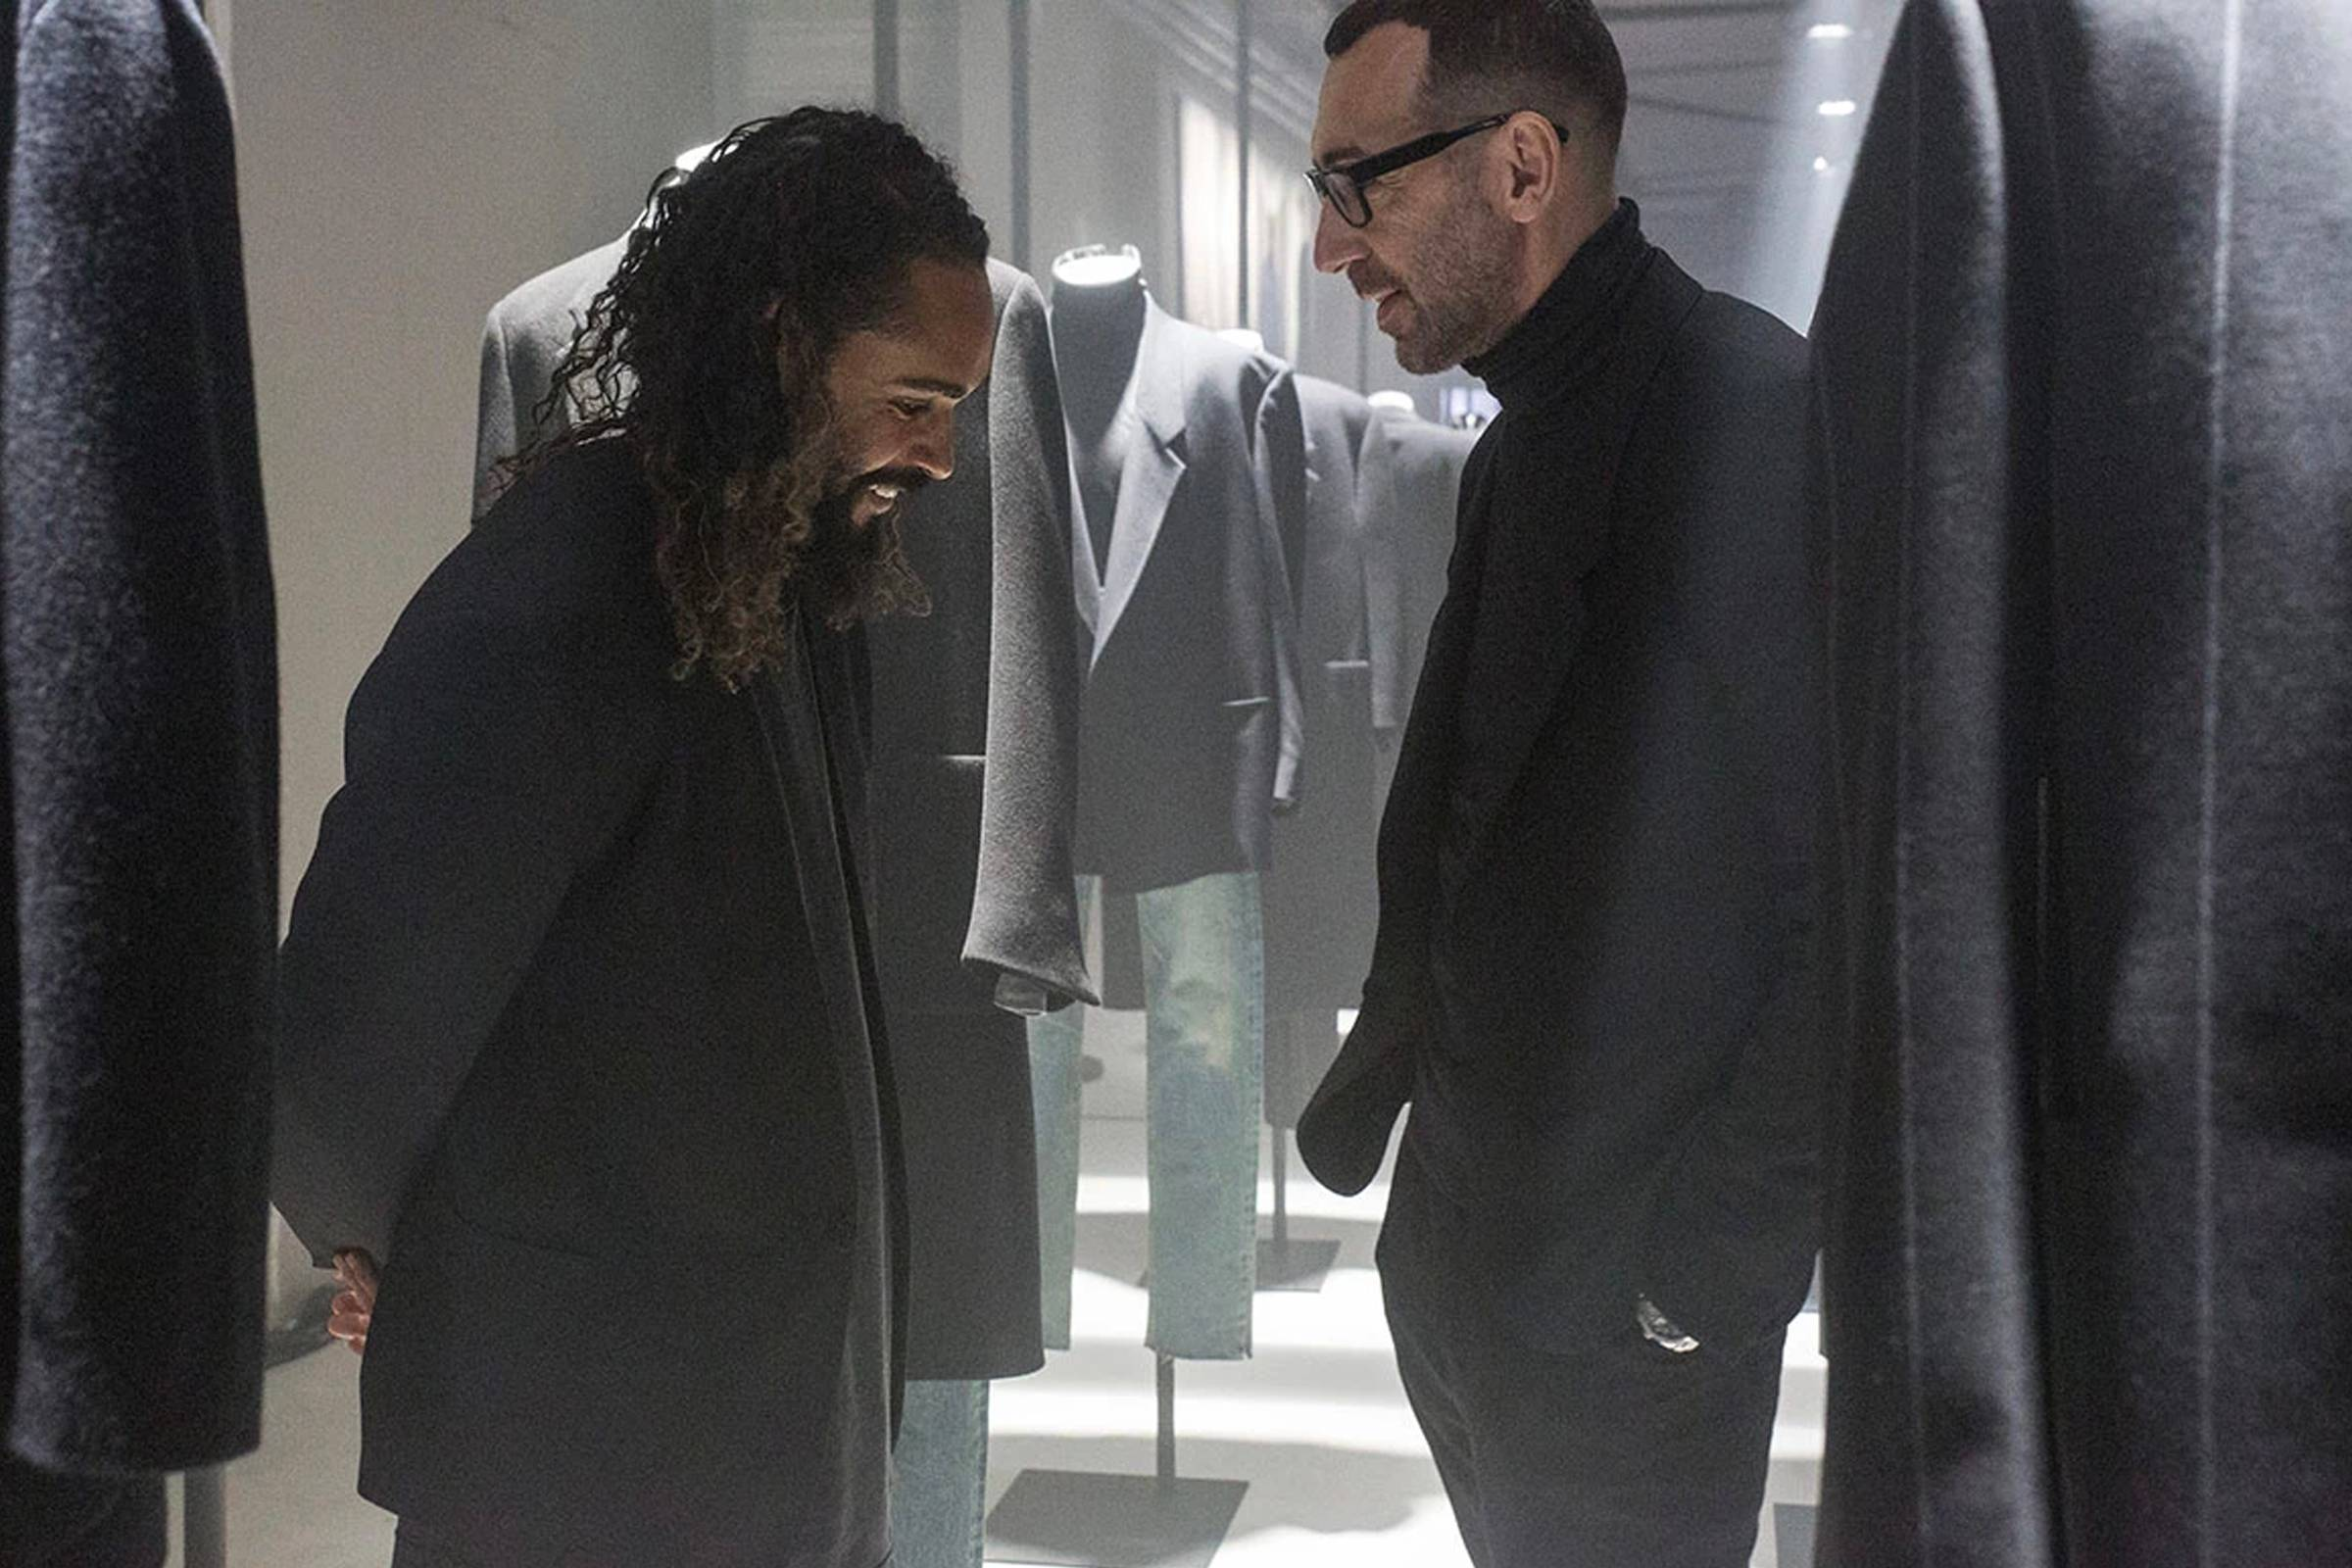 Jerry Lorenzo (left) and Ermenegildo Zegna's Alessandro Sartori together in celebration of their two brands' collaboration. (Image courtesy of Highsnobiety)